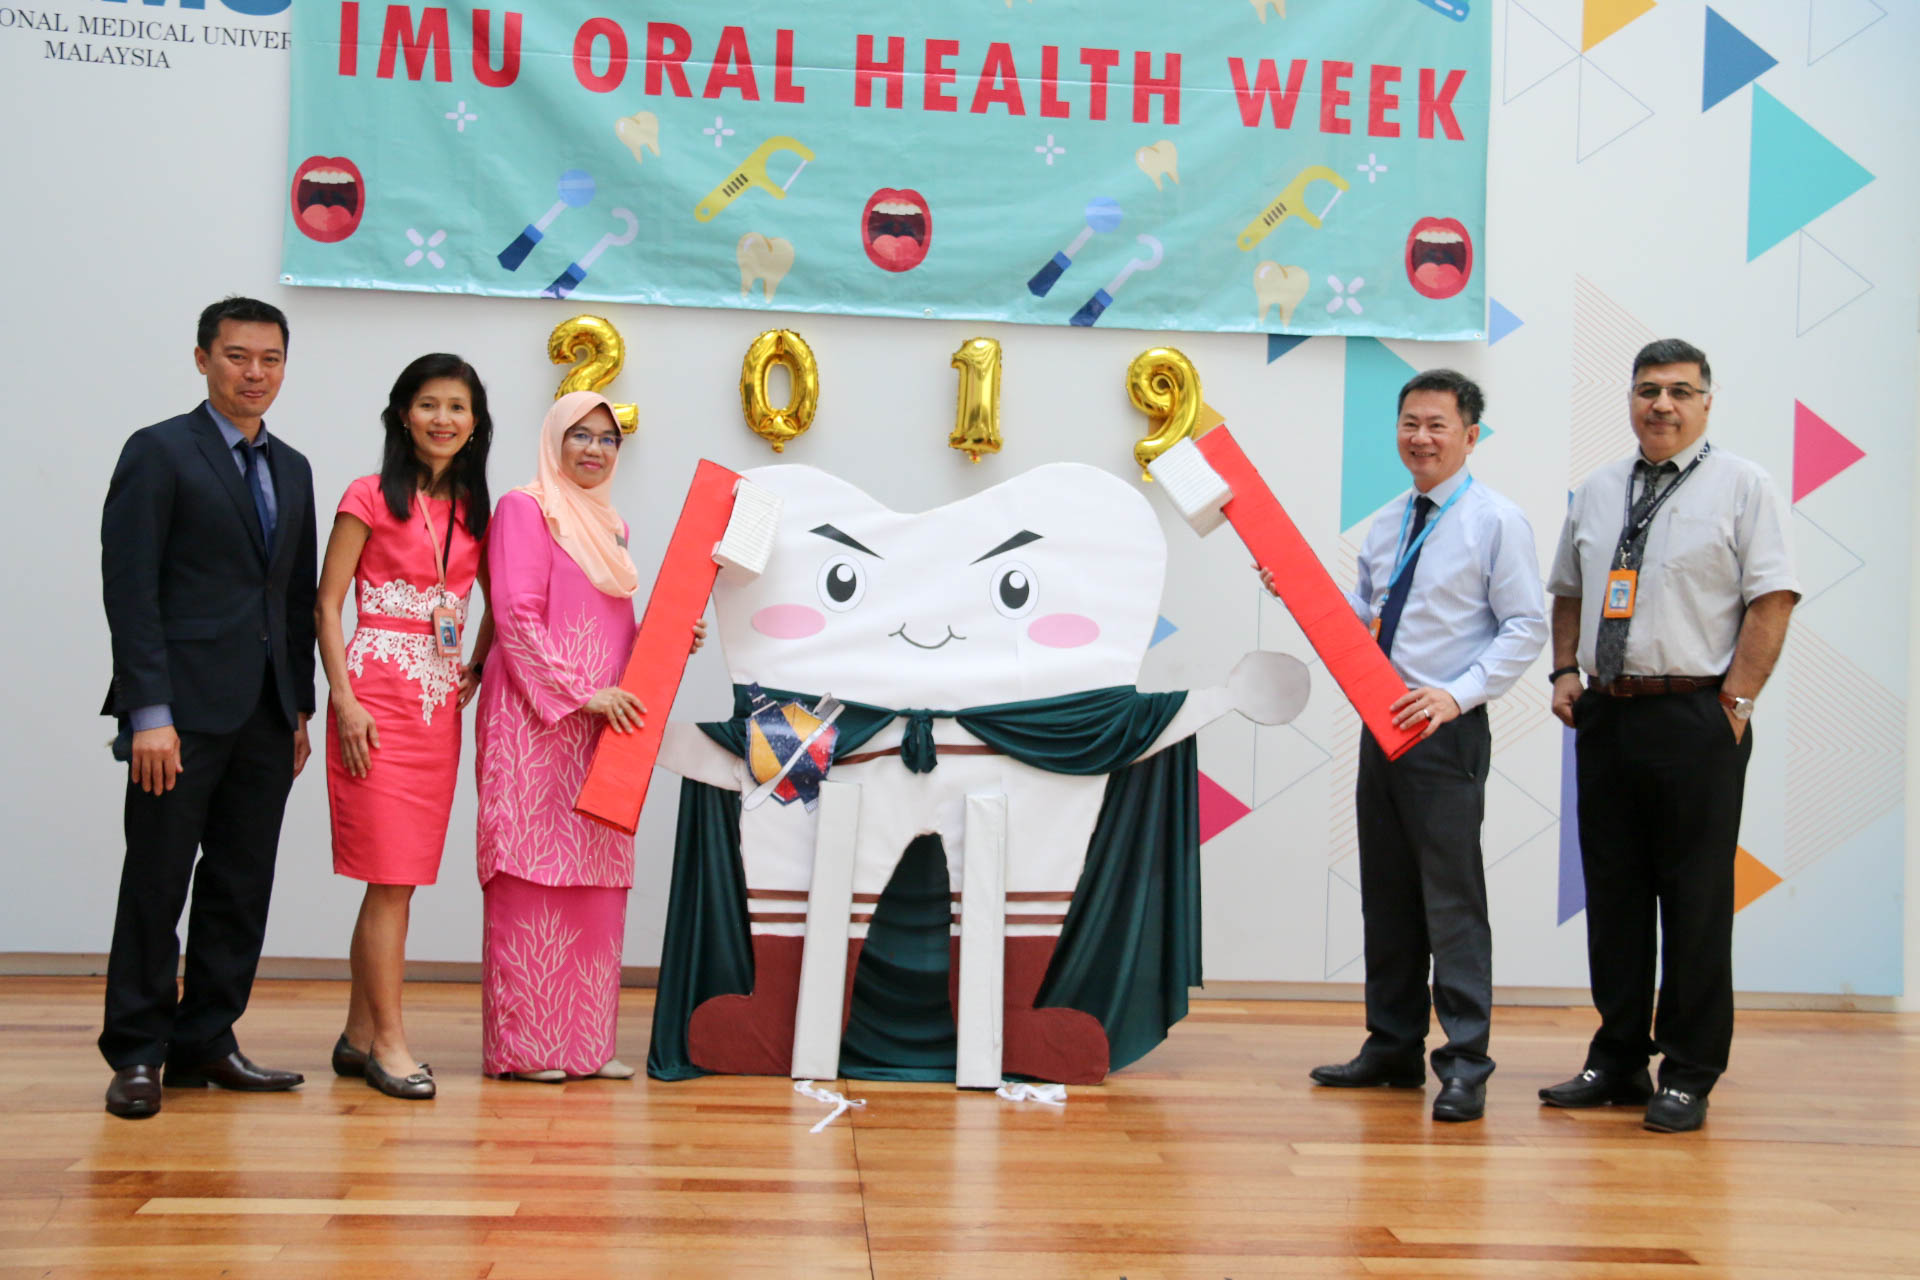 A student-led event to raise oral health awareness and promote the importance of self-care in the dental context.